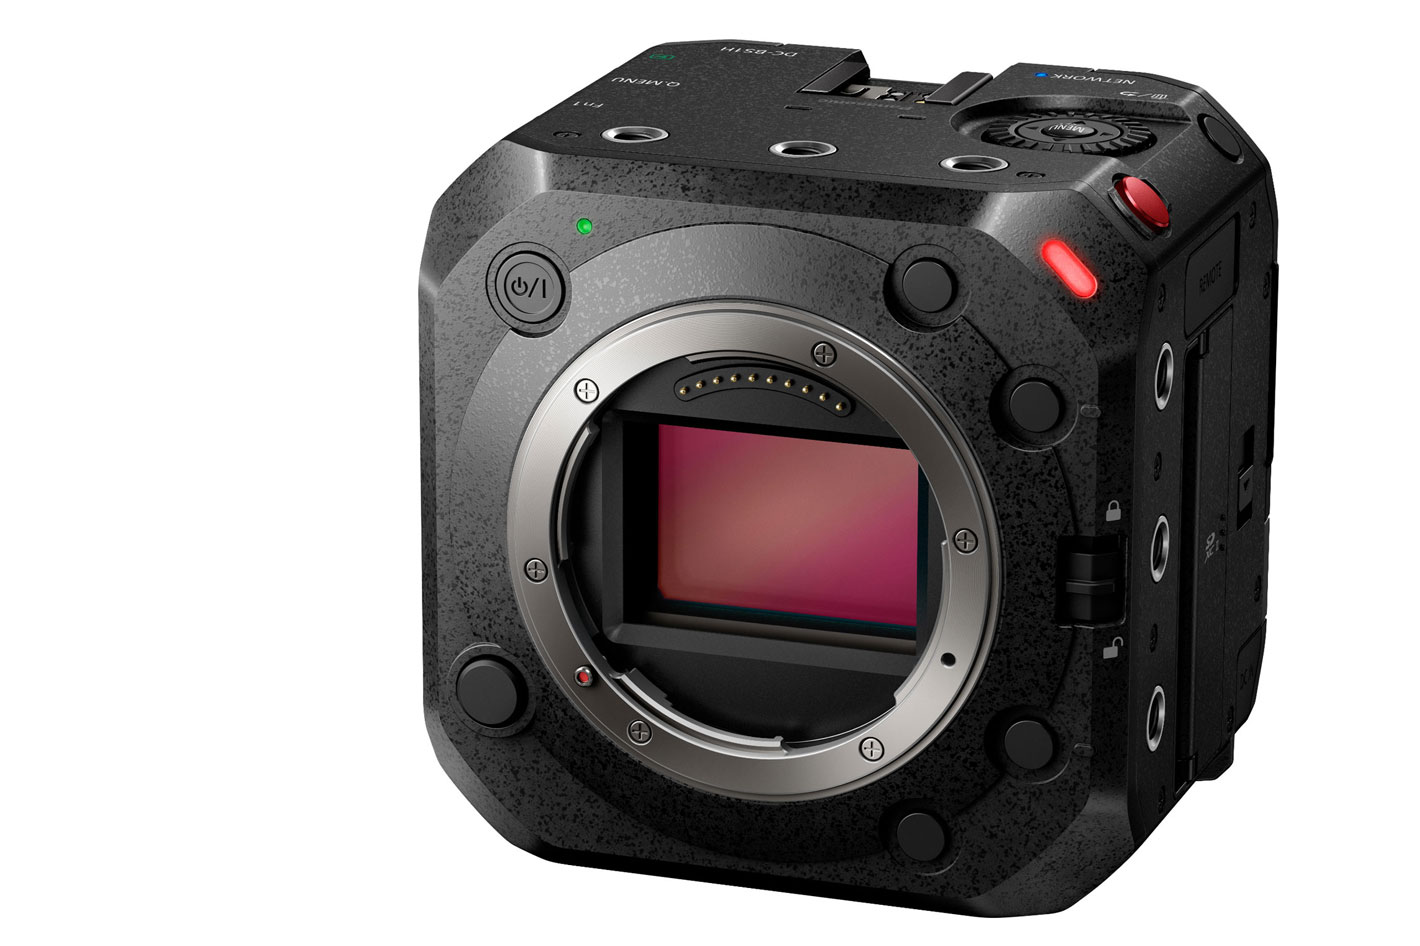 Panasonic LUMIX BS1H: a new cinema camera in a compact body 3